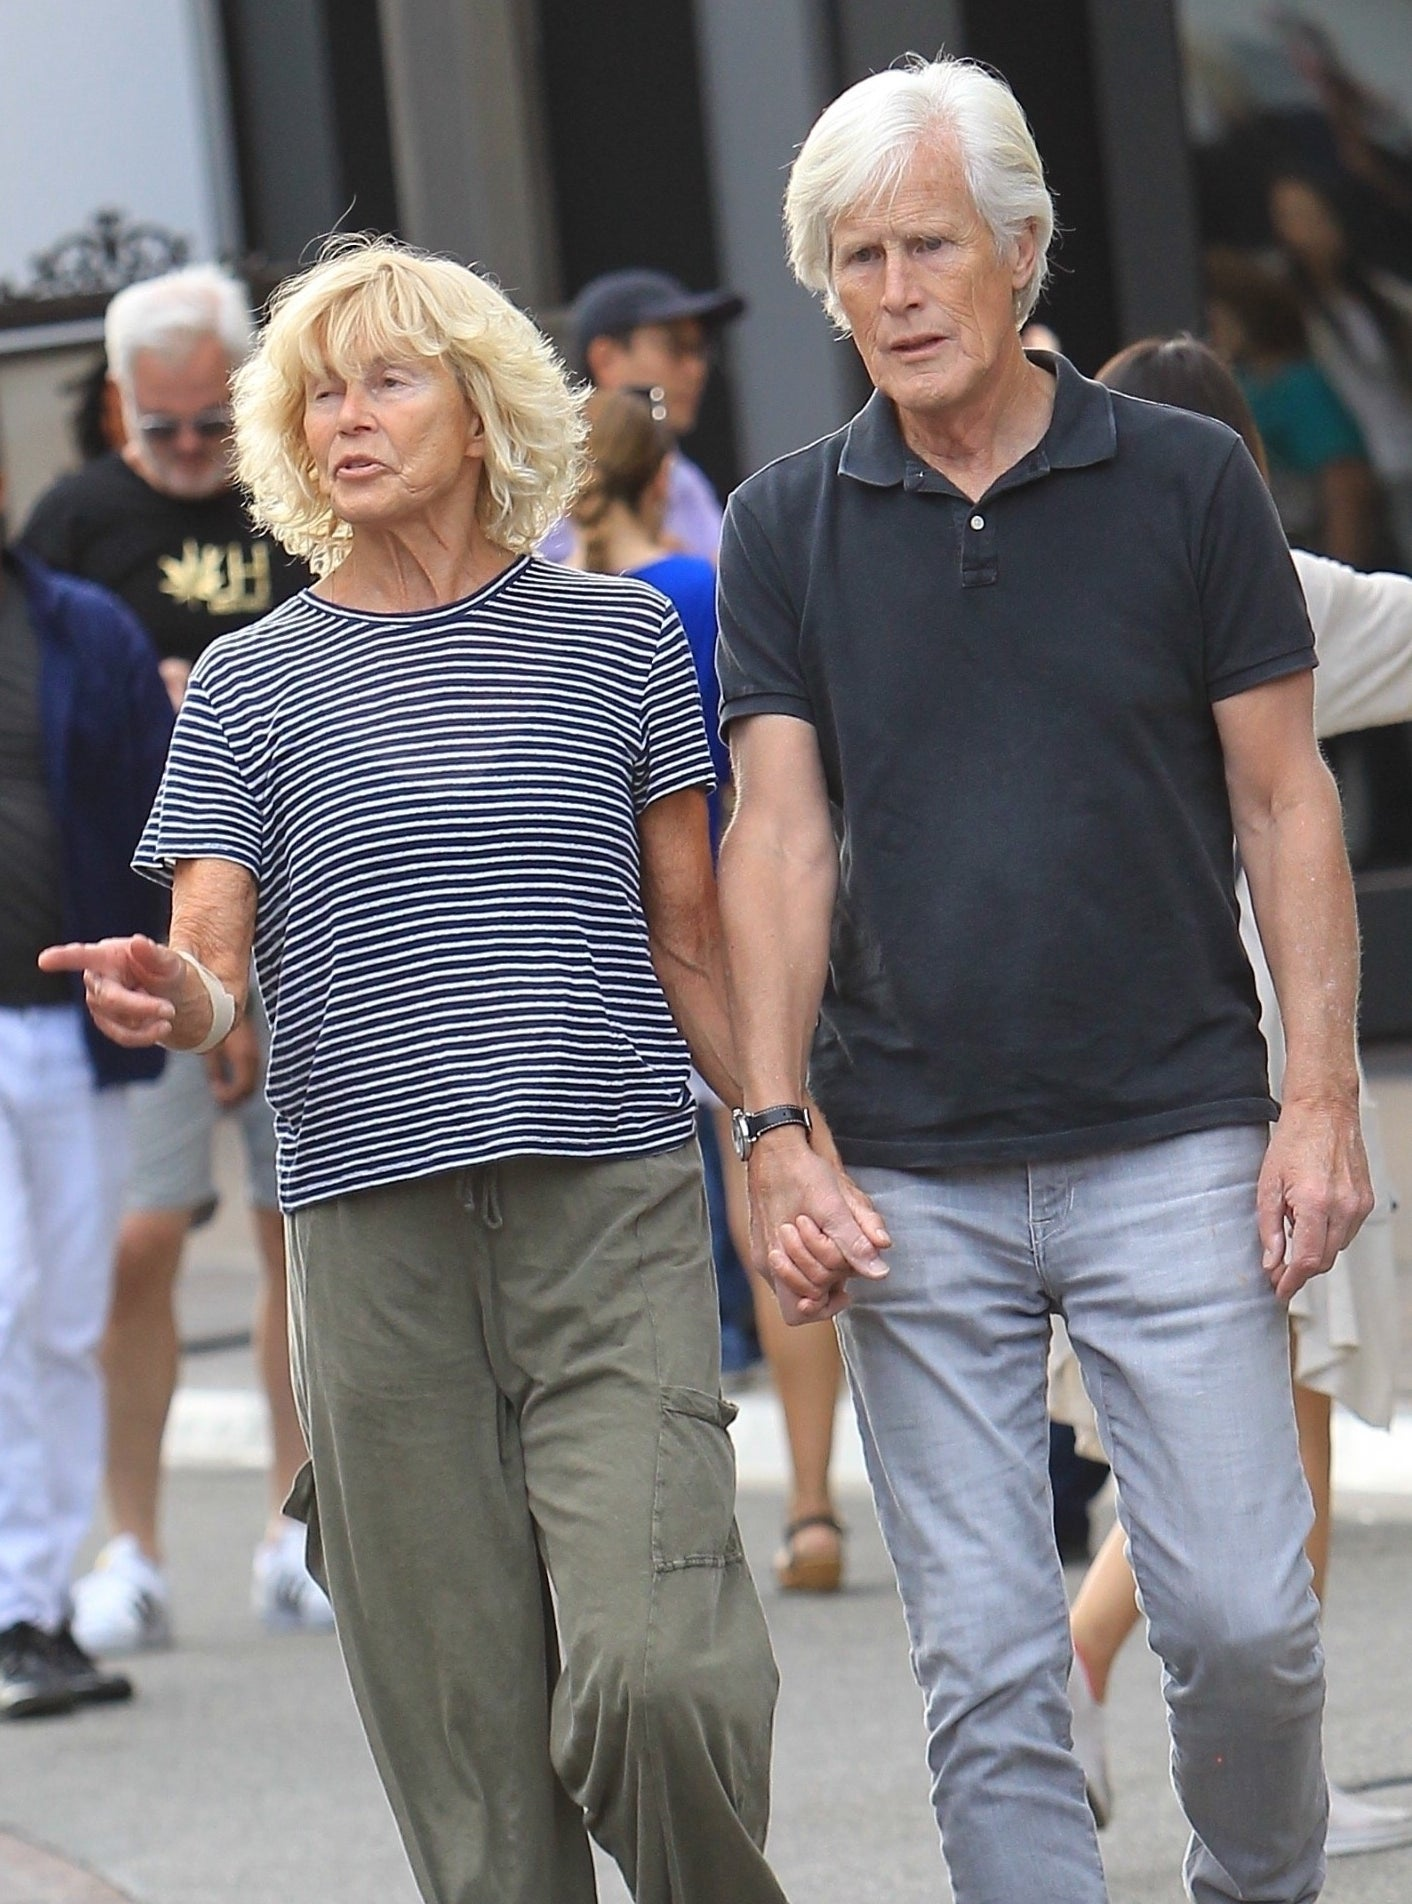 Suzanne and Keith holding hands and walking together, dressed casually